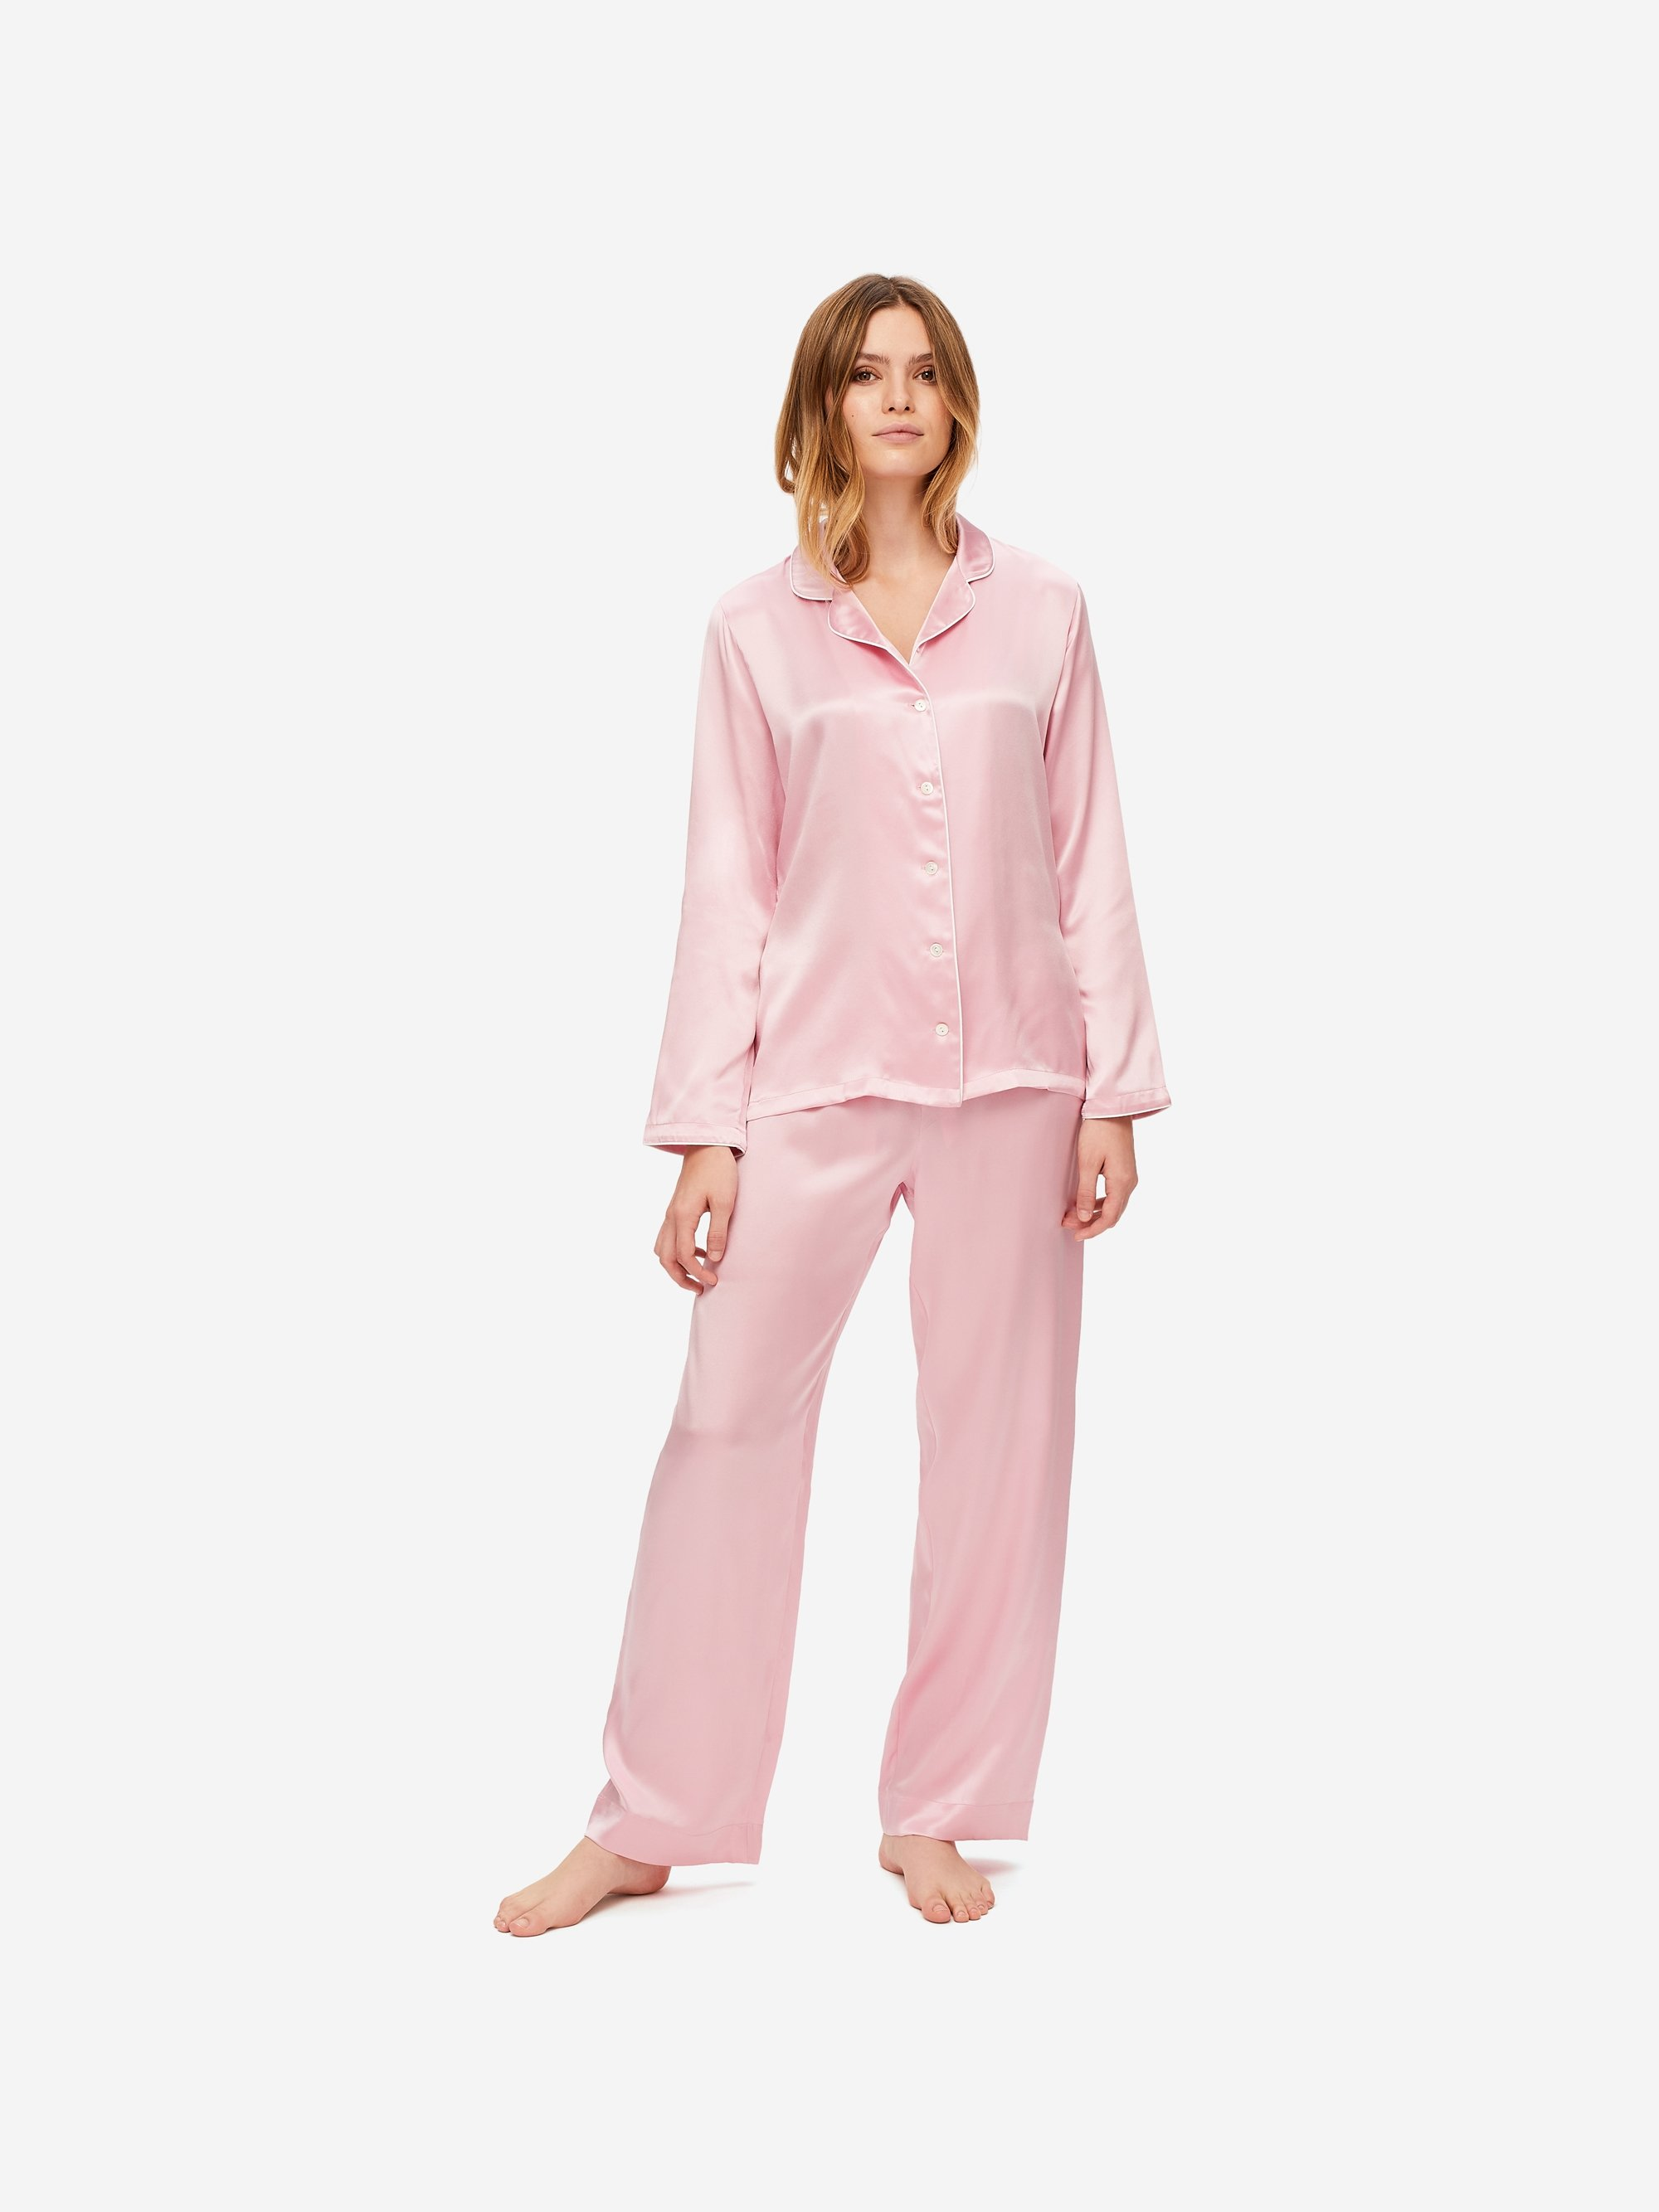 Women's Pyjamas Bailey 2 Pure Silk Satin Pink